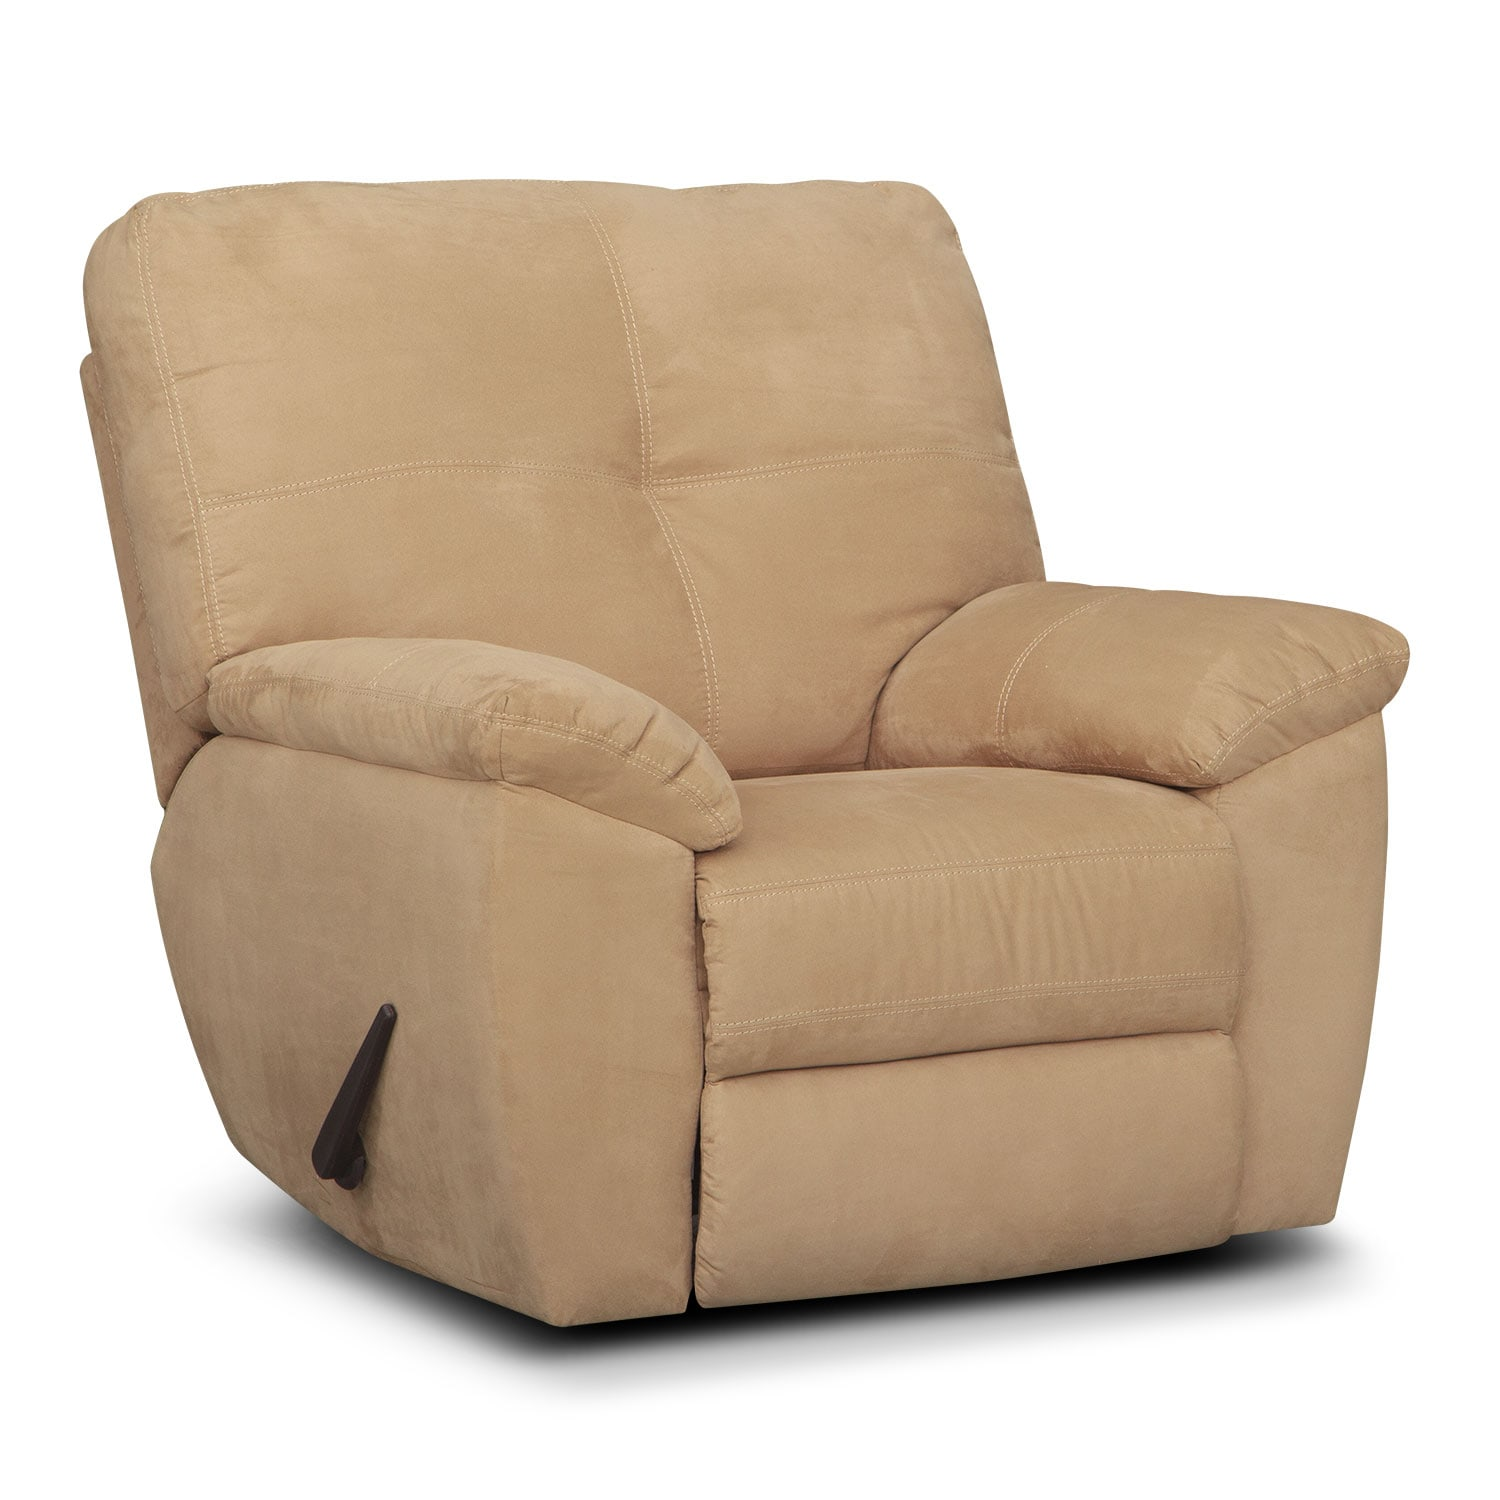 Living Room Furniture - Rialto Glider Recliner - Camel